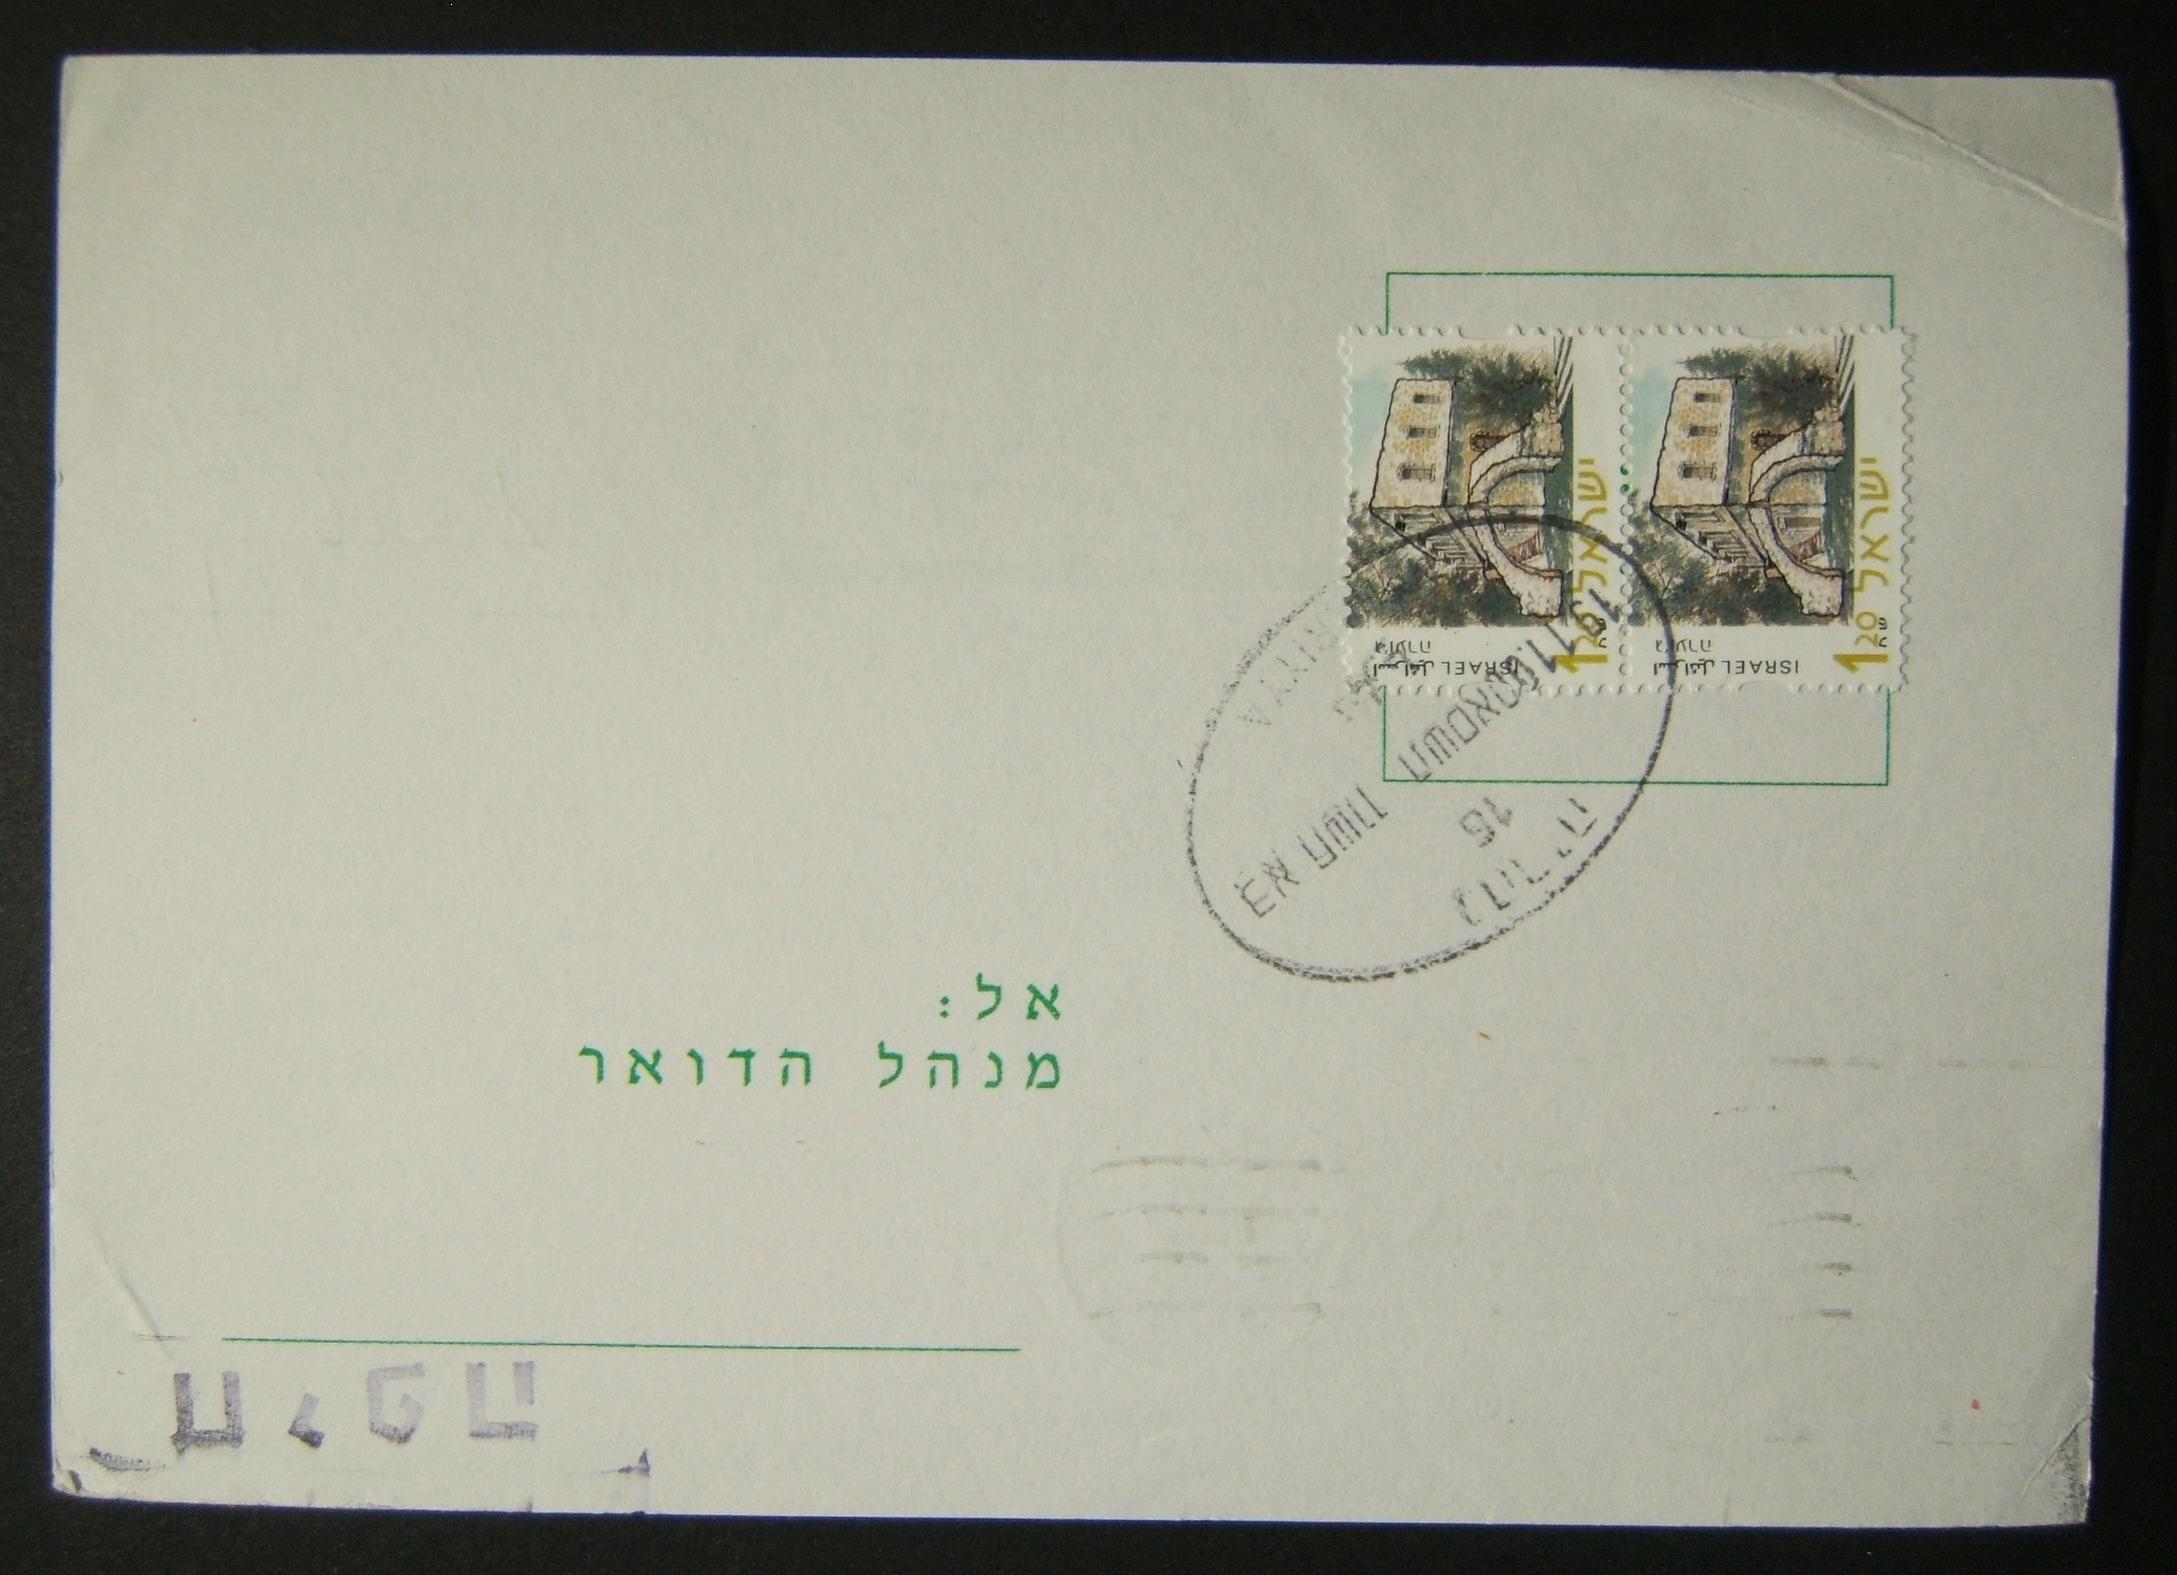 2000 DO-79 rate period franked taxation notice: 15-11-2000 Postal Authority printed sender taxation notice to NAHARIYA requesting additional franking for attempting to send a lette